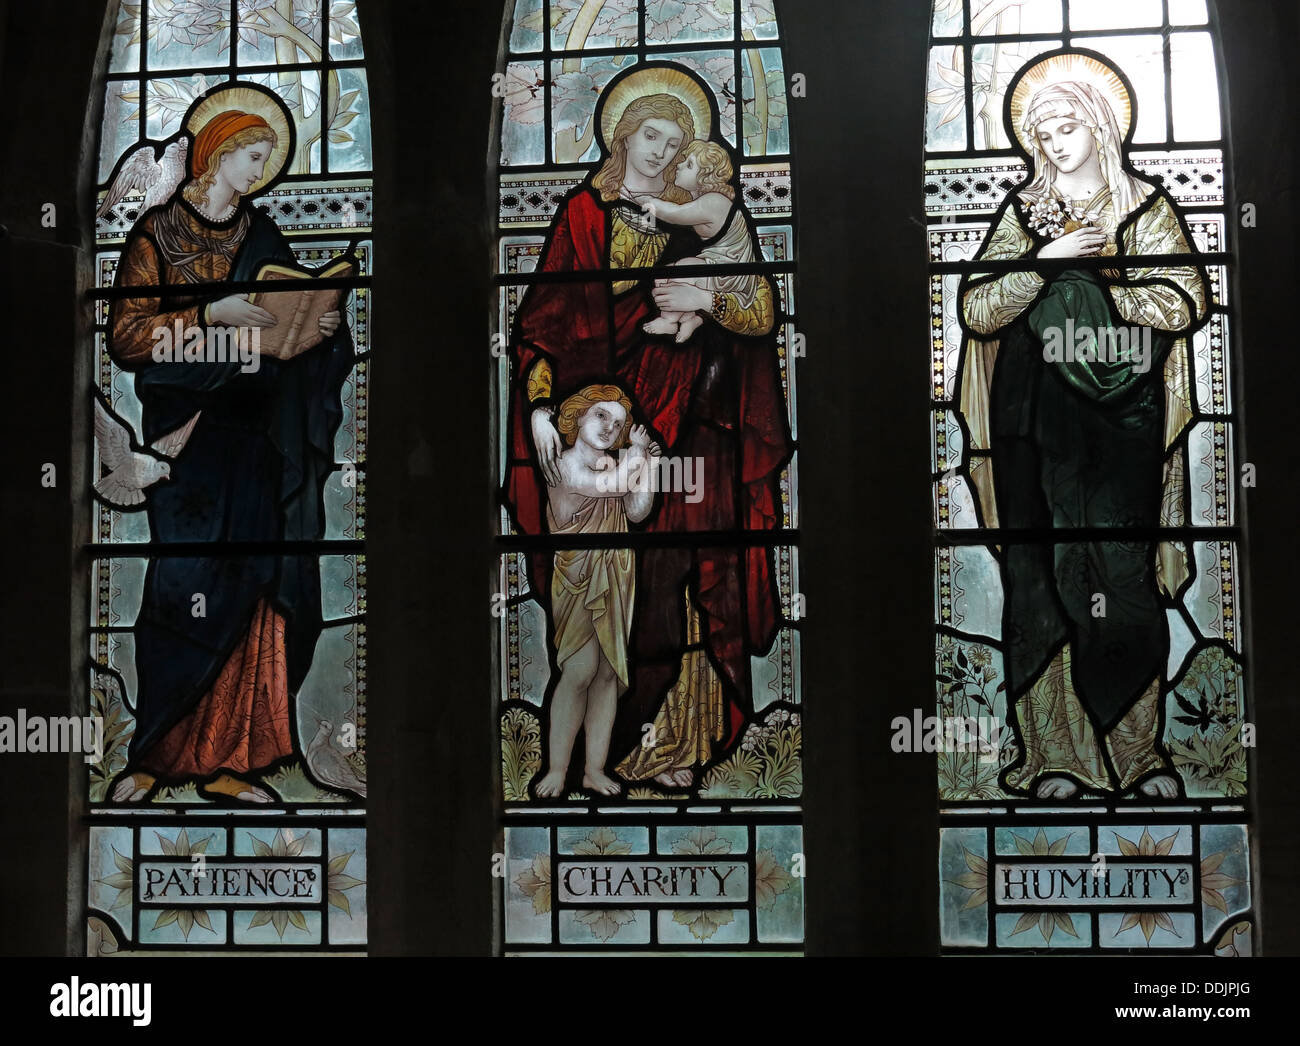 Patience Charity Humility Stained Glass in a church, South Window St Andrews Church Brympton D'Evercy Somerset England Stock Photo